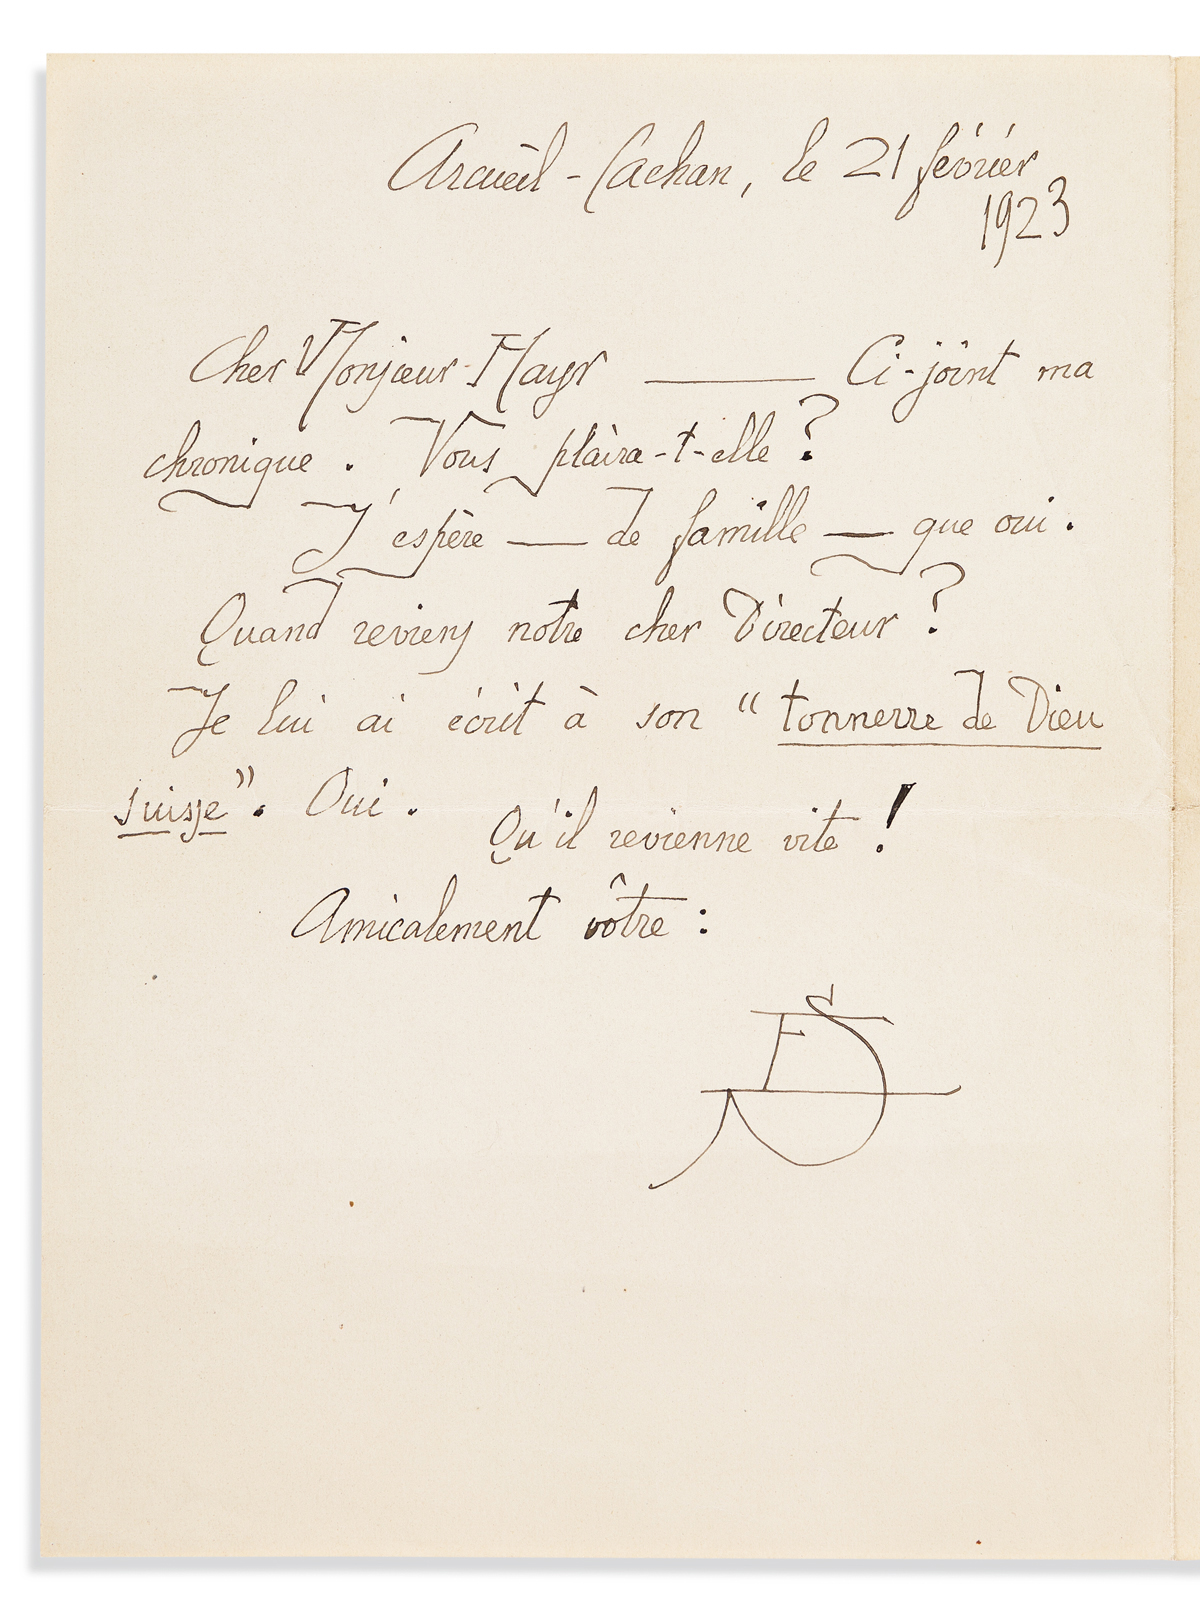 SATIE, ERIK. Autograph Letter Signed, with his monogram (ES), to editor of Les Feuilles libres Wieland Mayr (Dear Mr. Mayr), in Fre